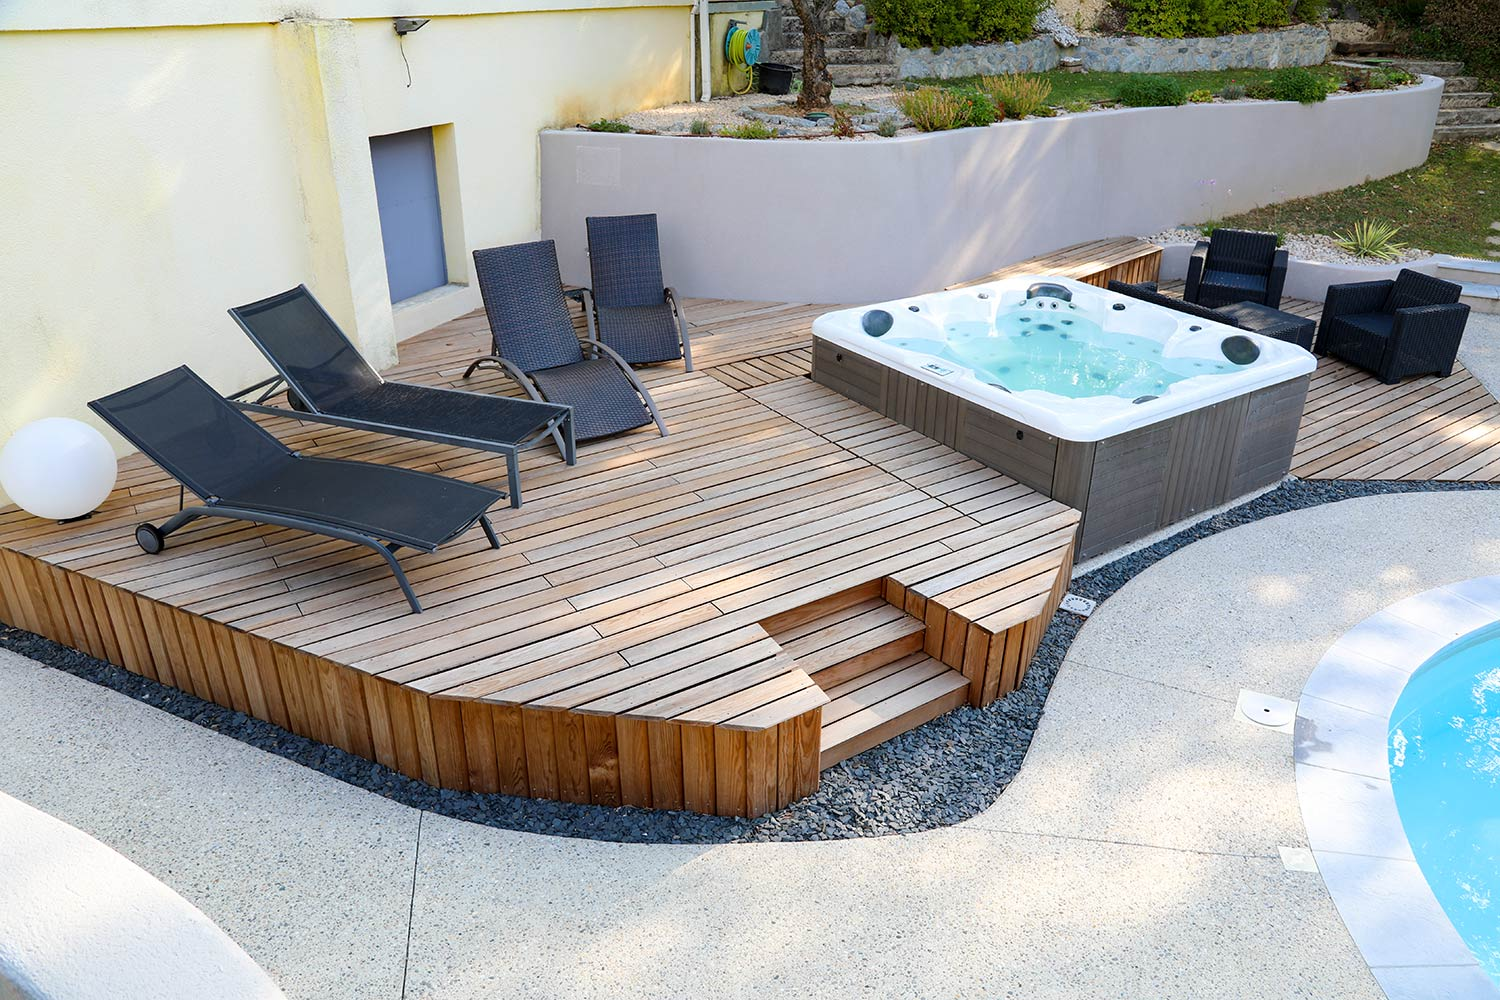 terrasse sur lev e sur mesure en bois avec spa valente. Black Bedroom Furniture Sets. Home Design Ideas